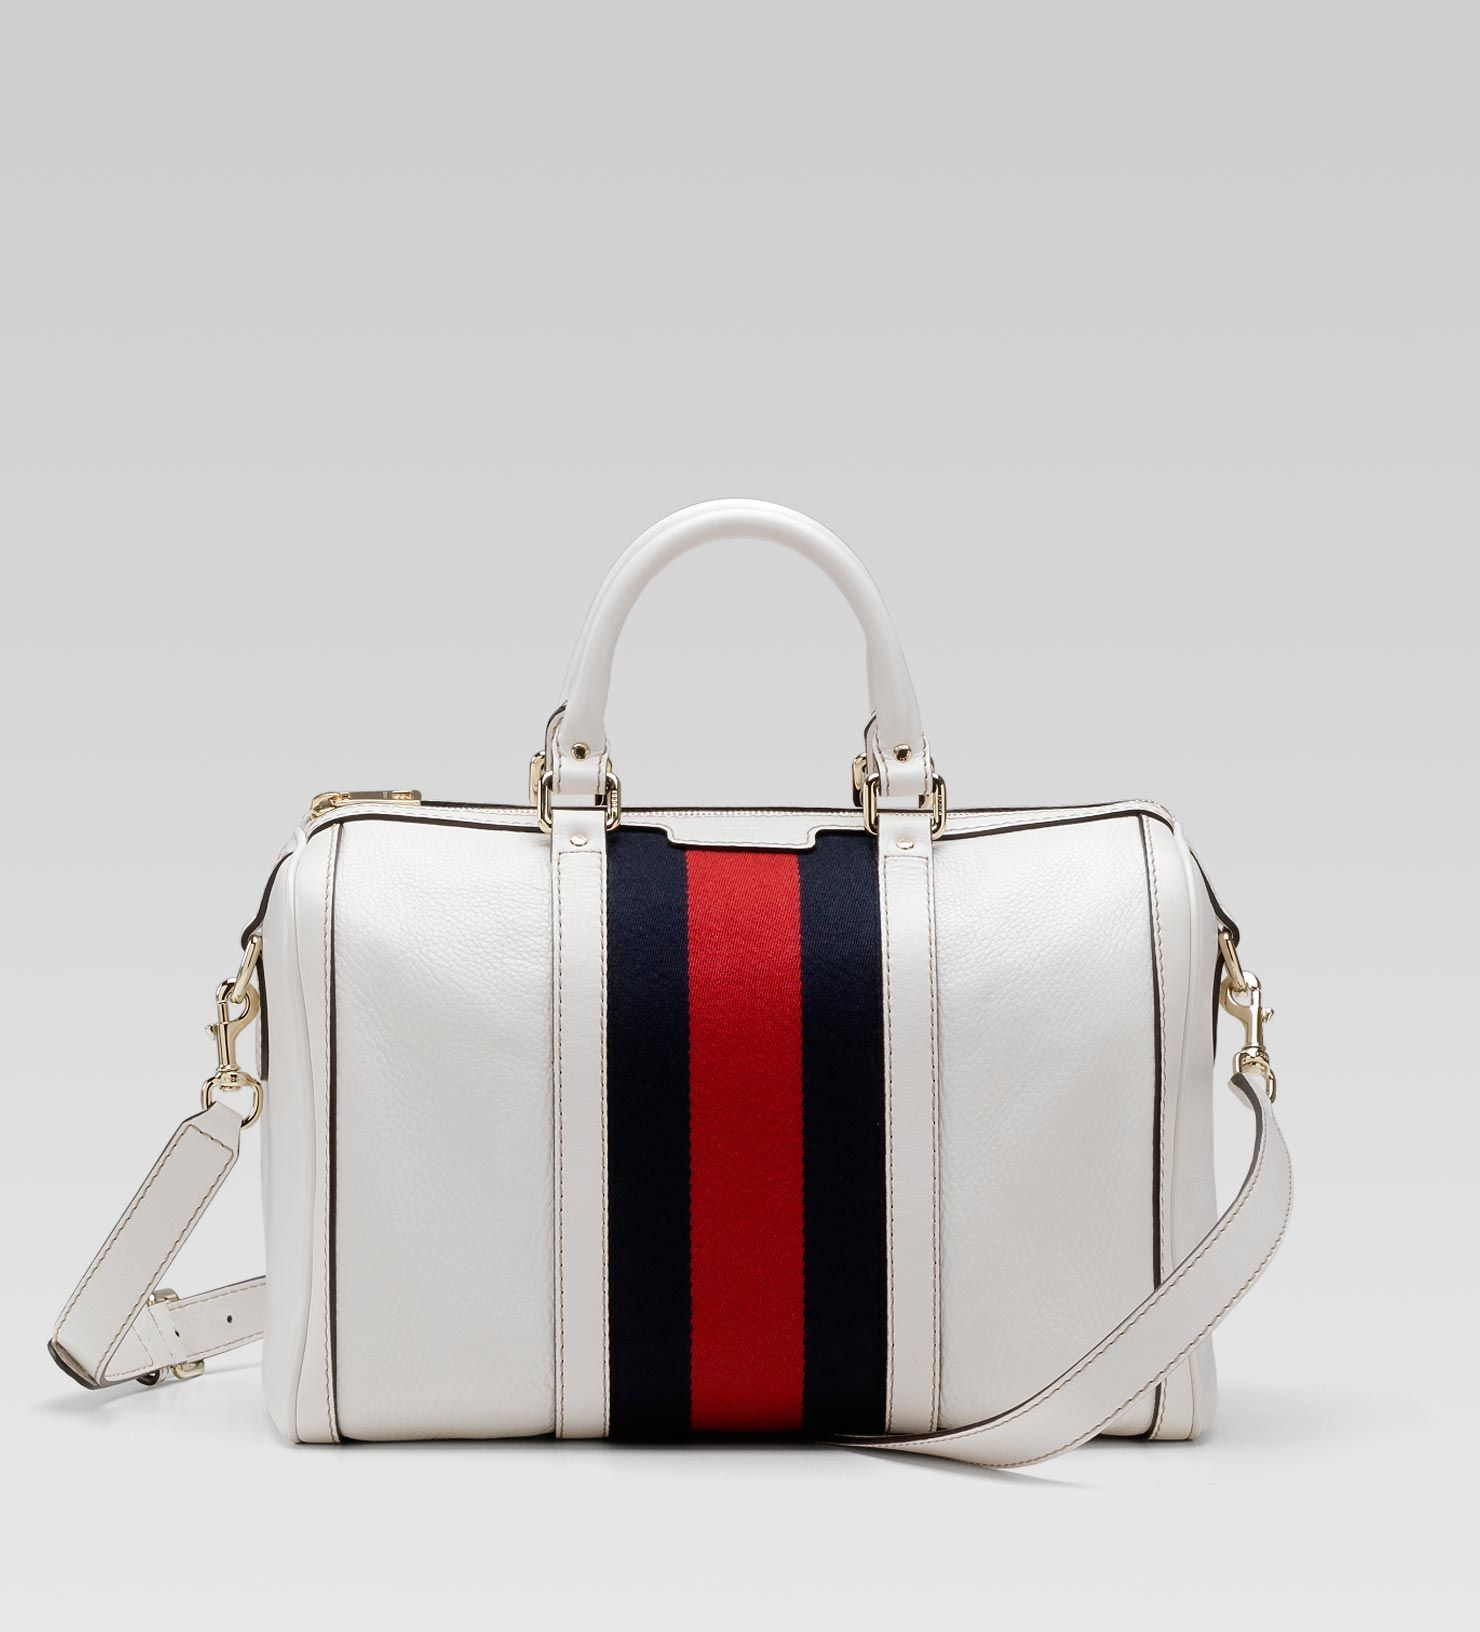 Gucci Boston Bag Trying To Find This For My Cousin